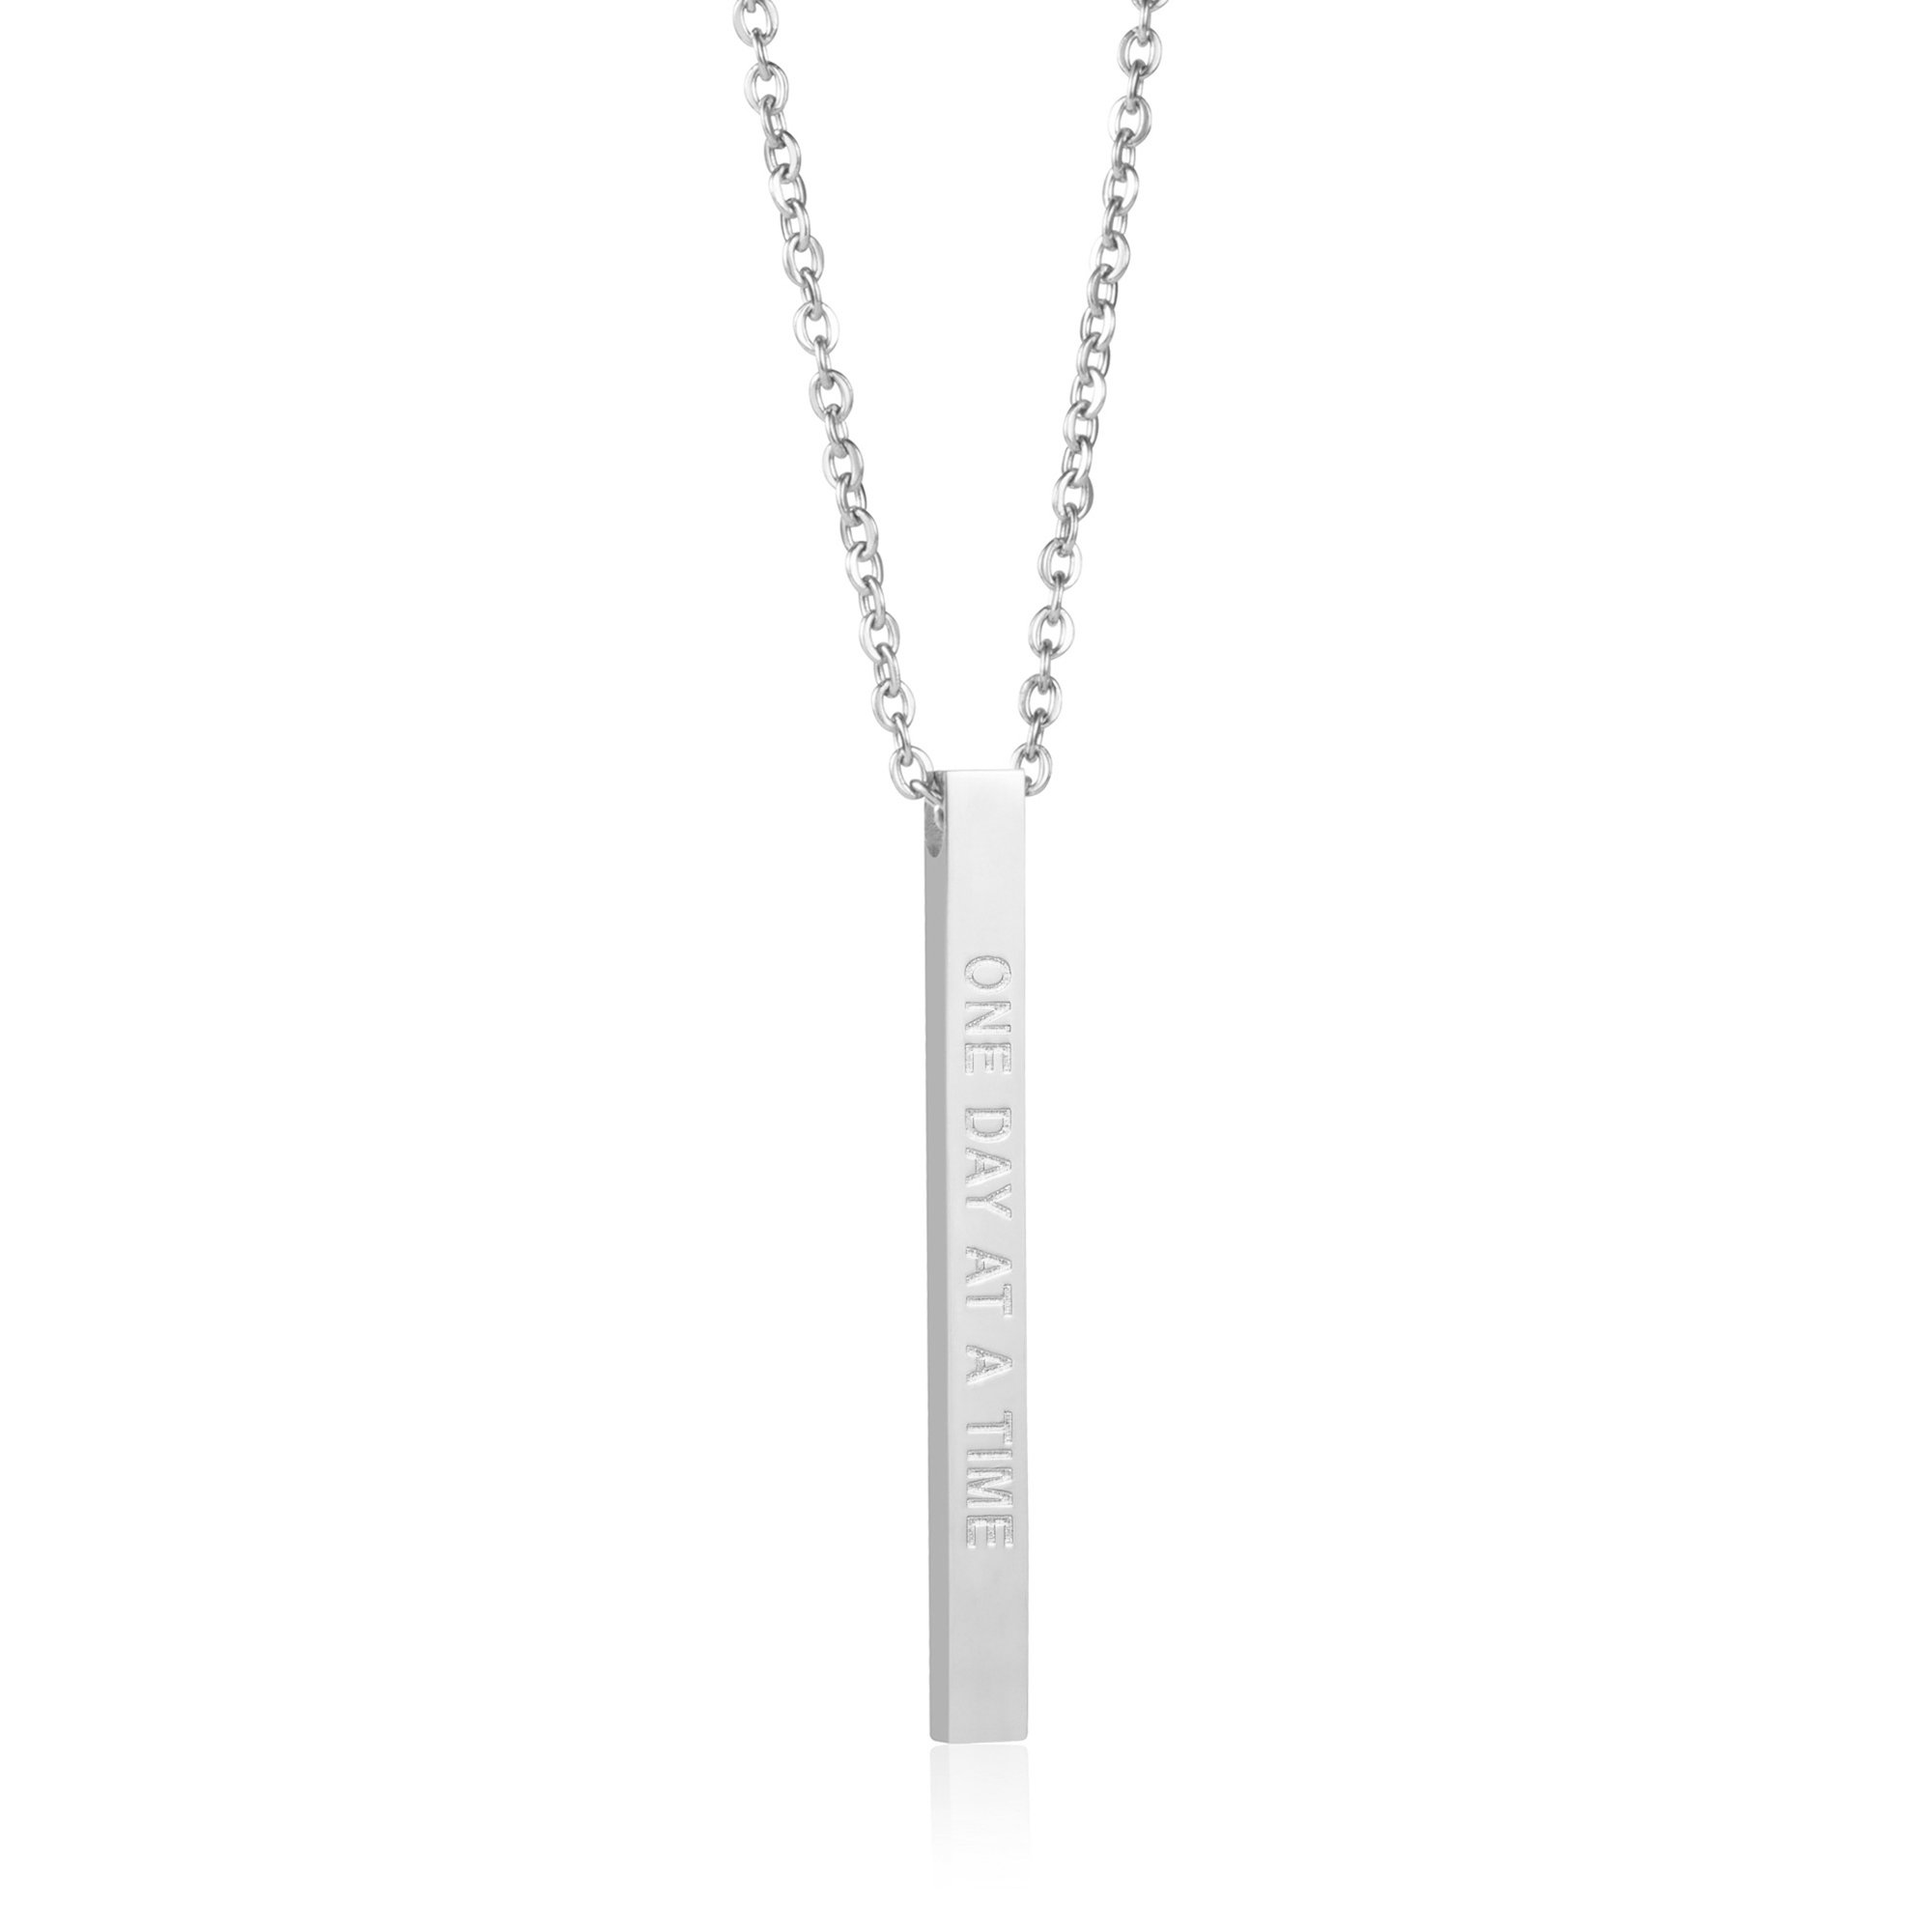 Joycuff Inspired Jewelry New Mom Gifts Vertical Bar Necklace Mantra Sobriety Saying One Day at A Time